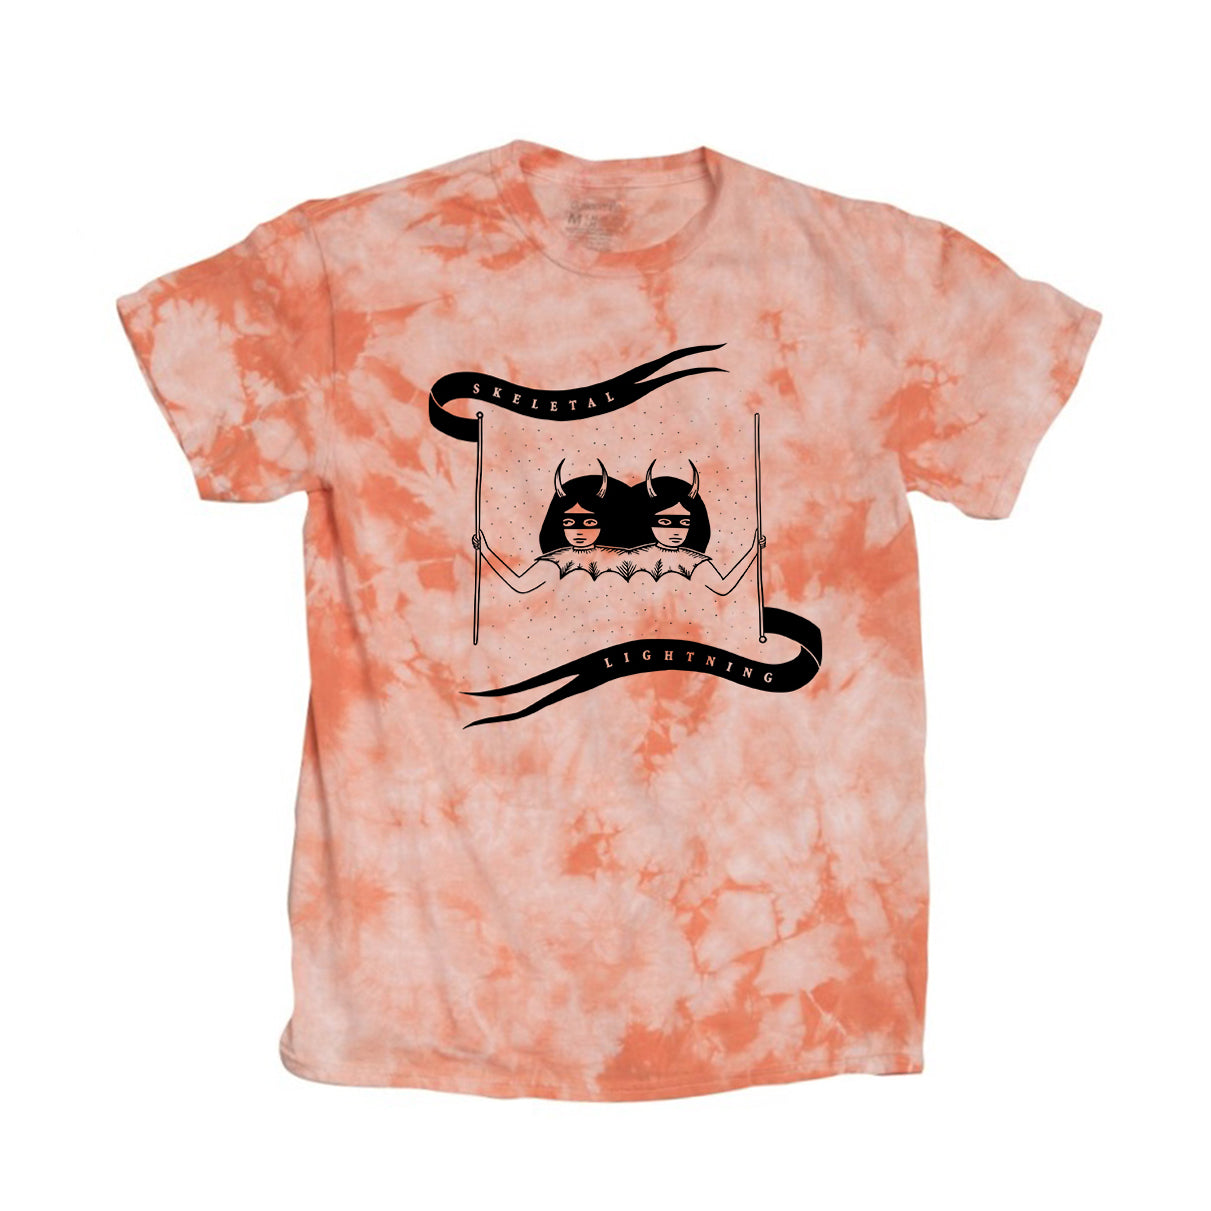 Skeletal Lightning Devil Girls Tie Dye T-Shirt